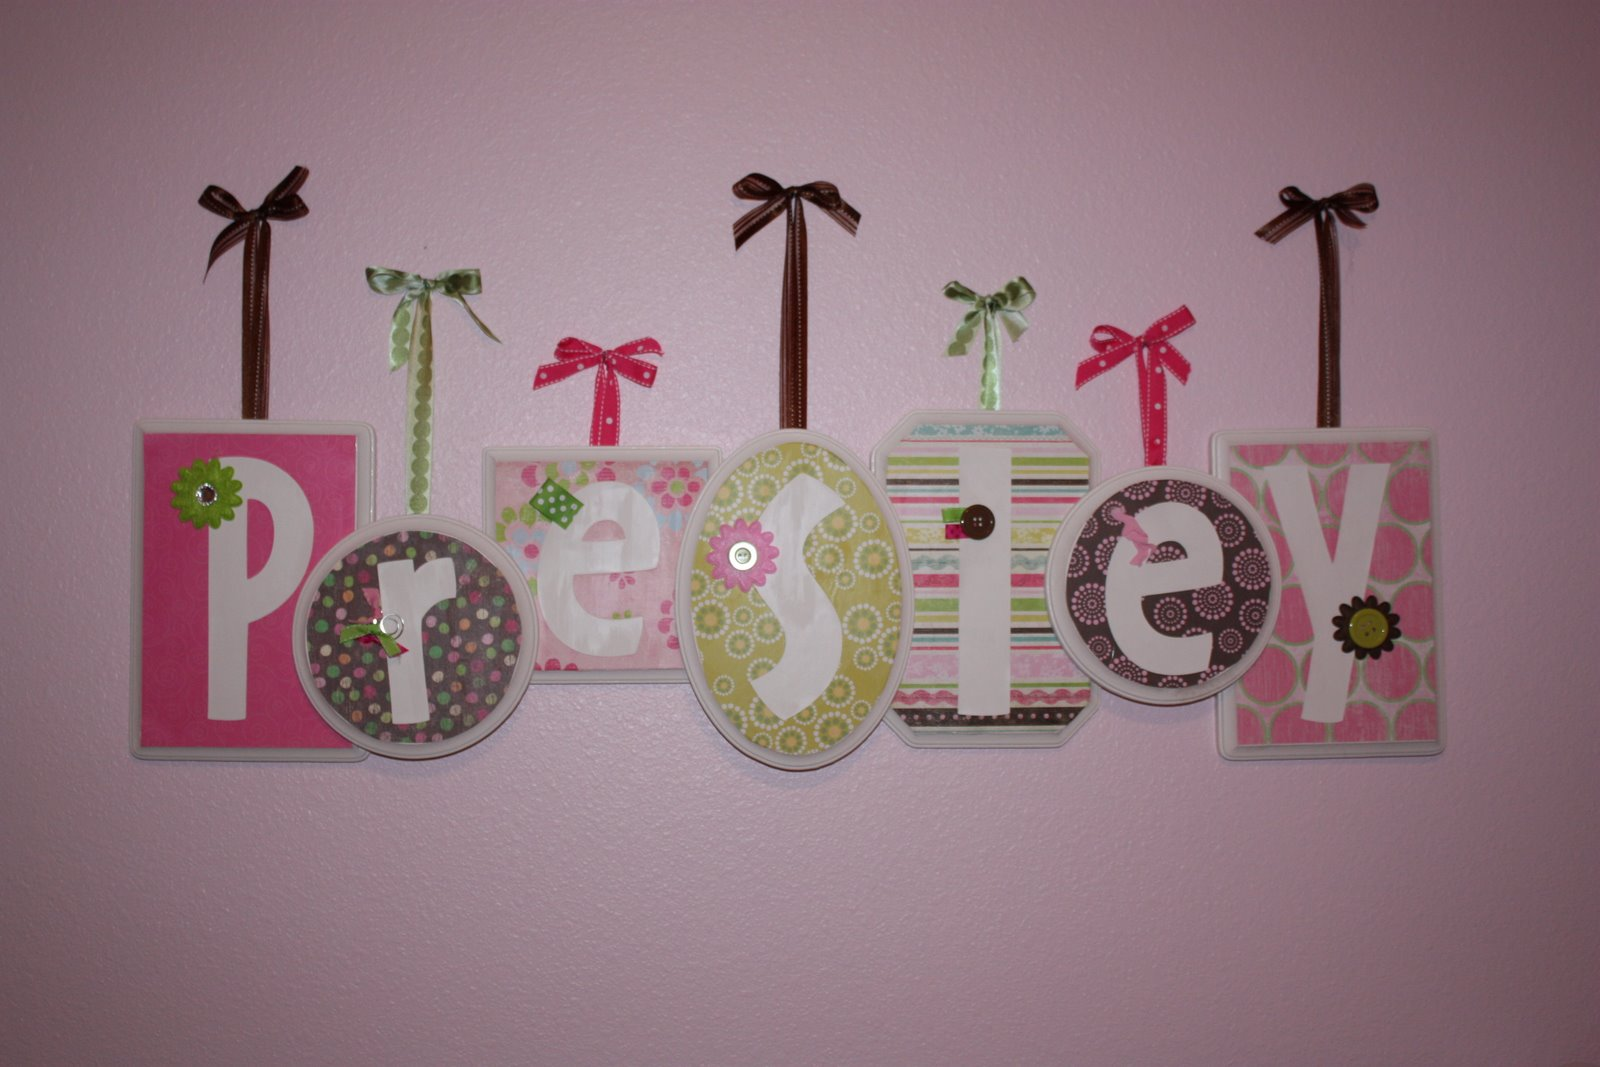 Diy decor ideas design dazzle for Baby name decoration